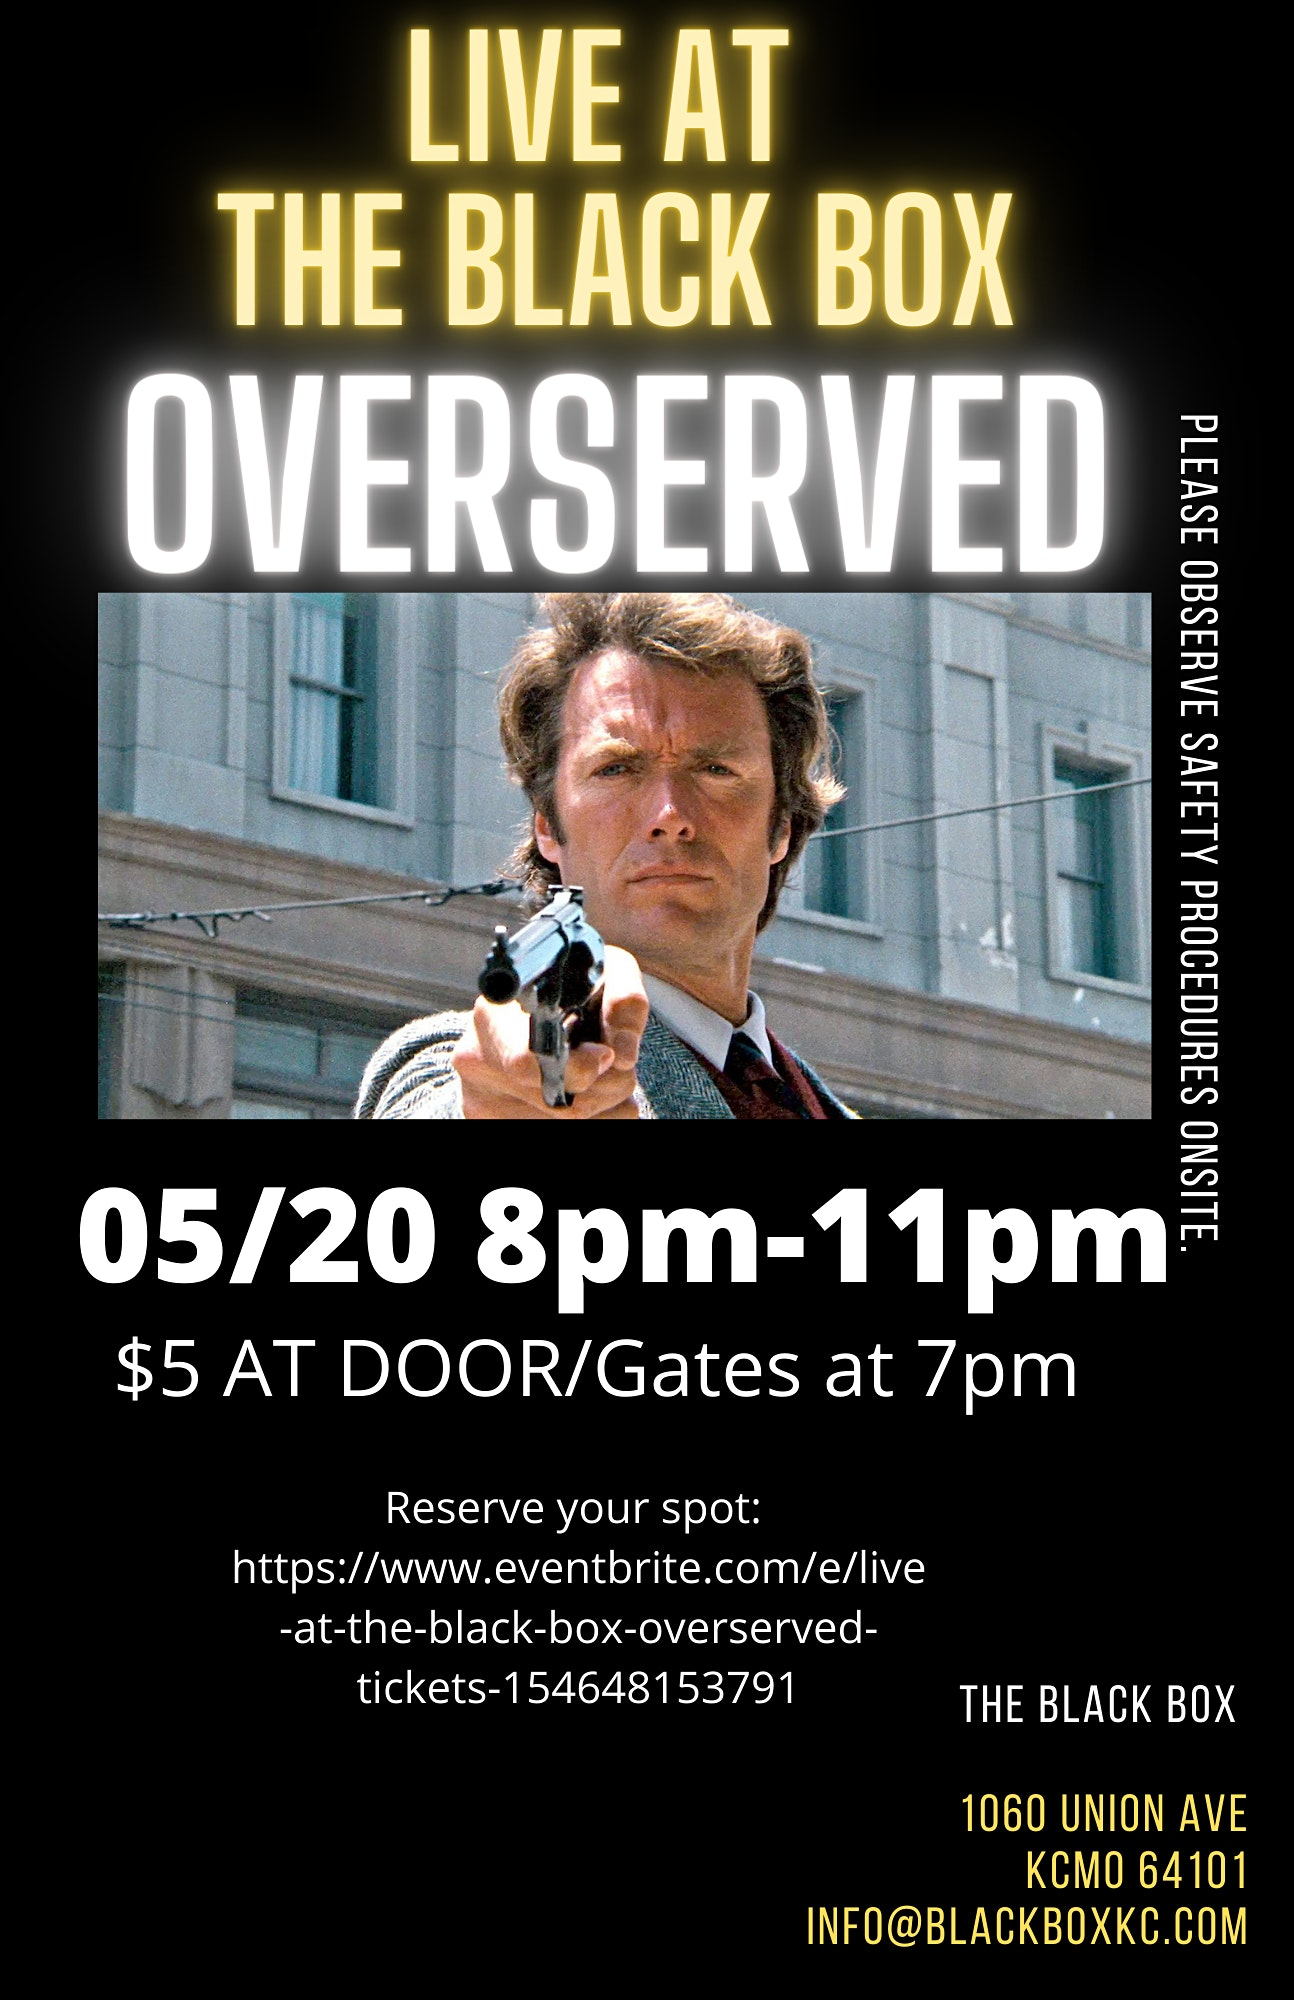 THU, MAY 20, 2021 - LIVE AT THE BLACK BOX: OVERSERVED